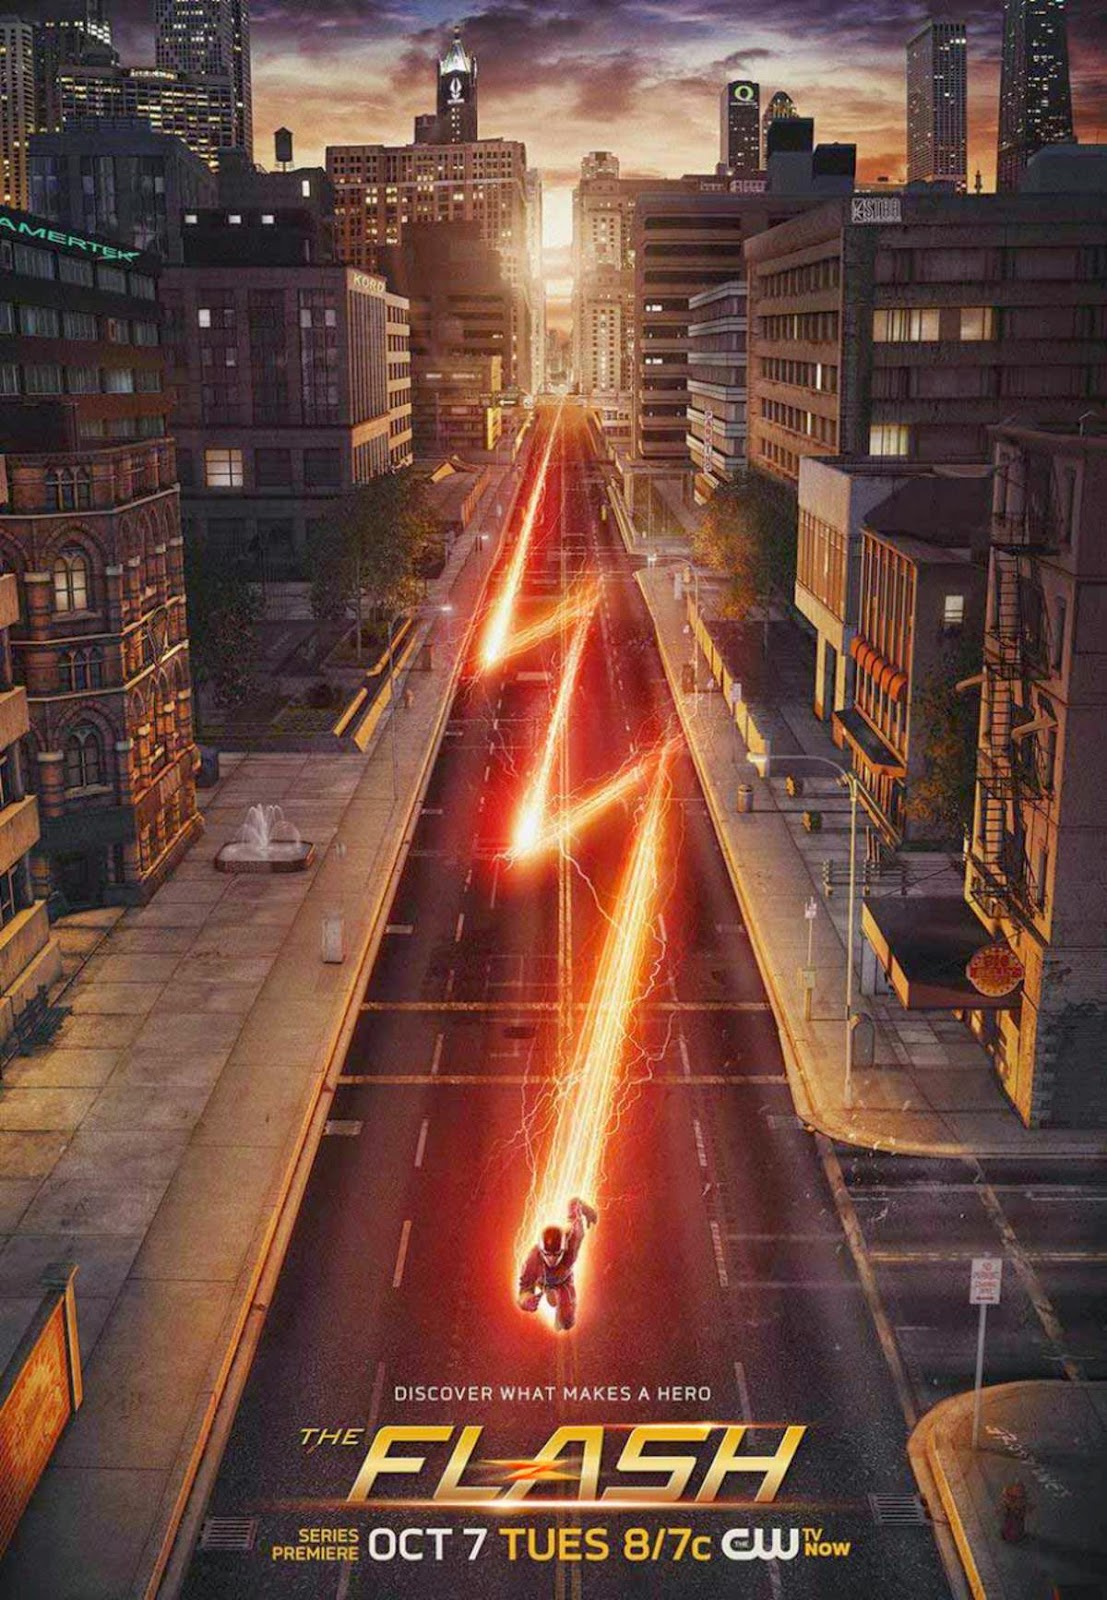 """The Flash"" season 1 poster"